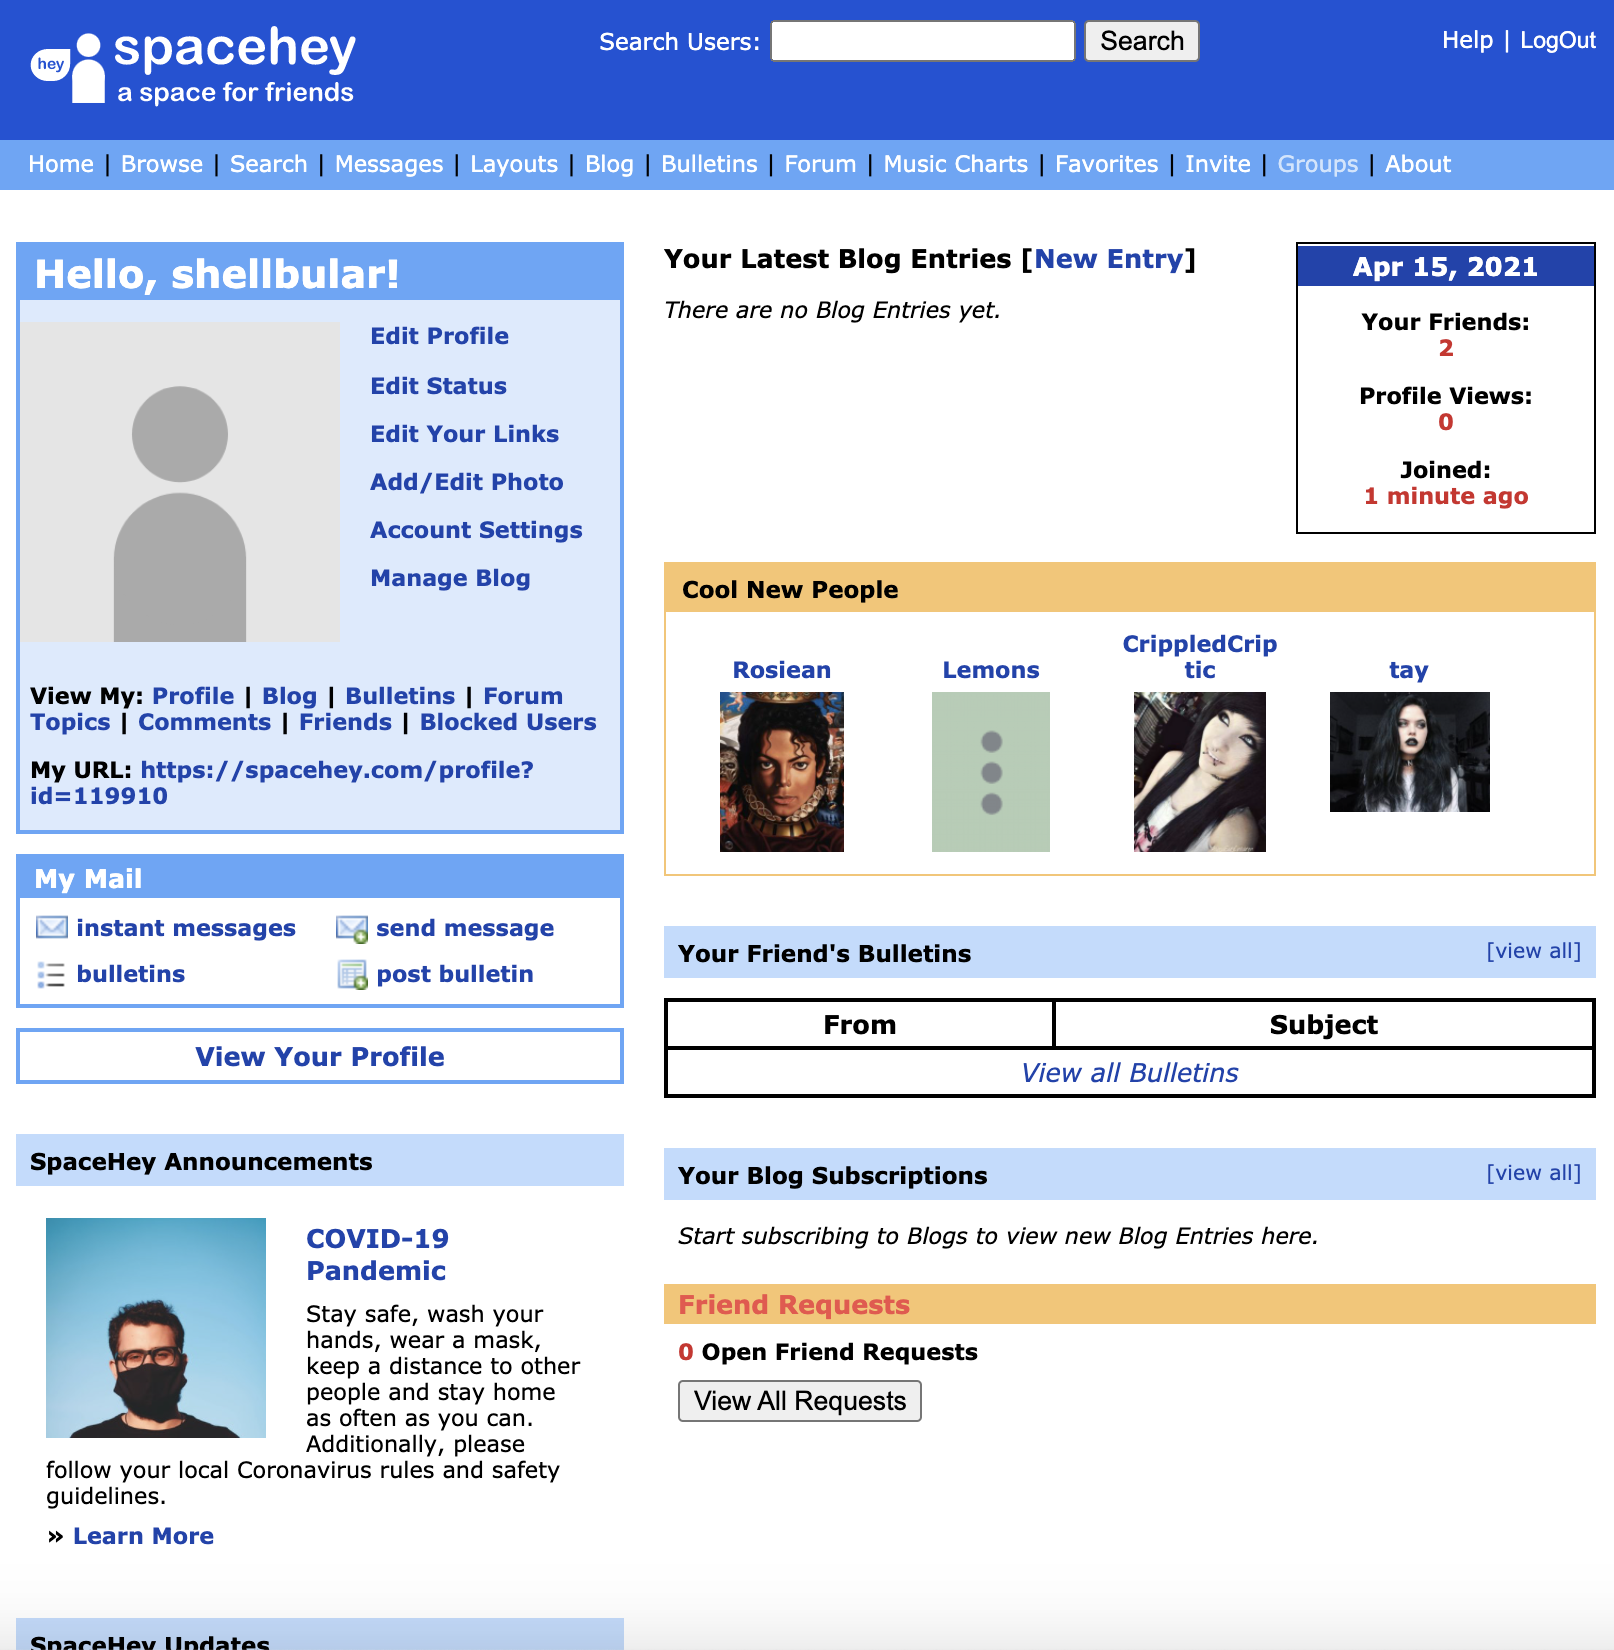 The SpaceHey homepage, looking exactly like the old Myspace homepage down to the positioning, font, and colors